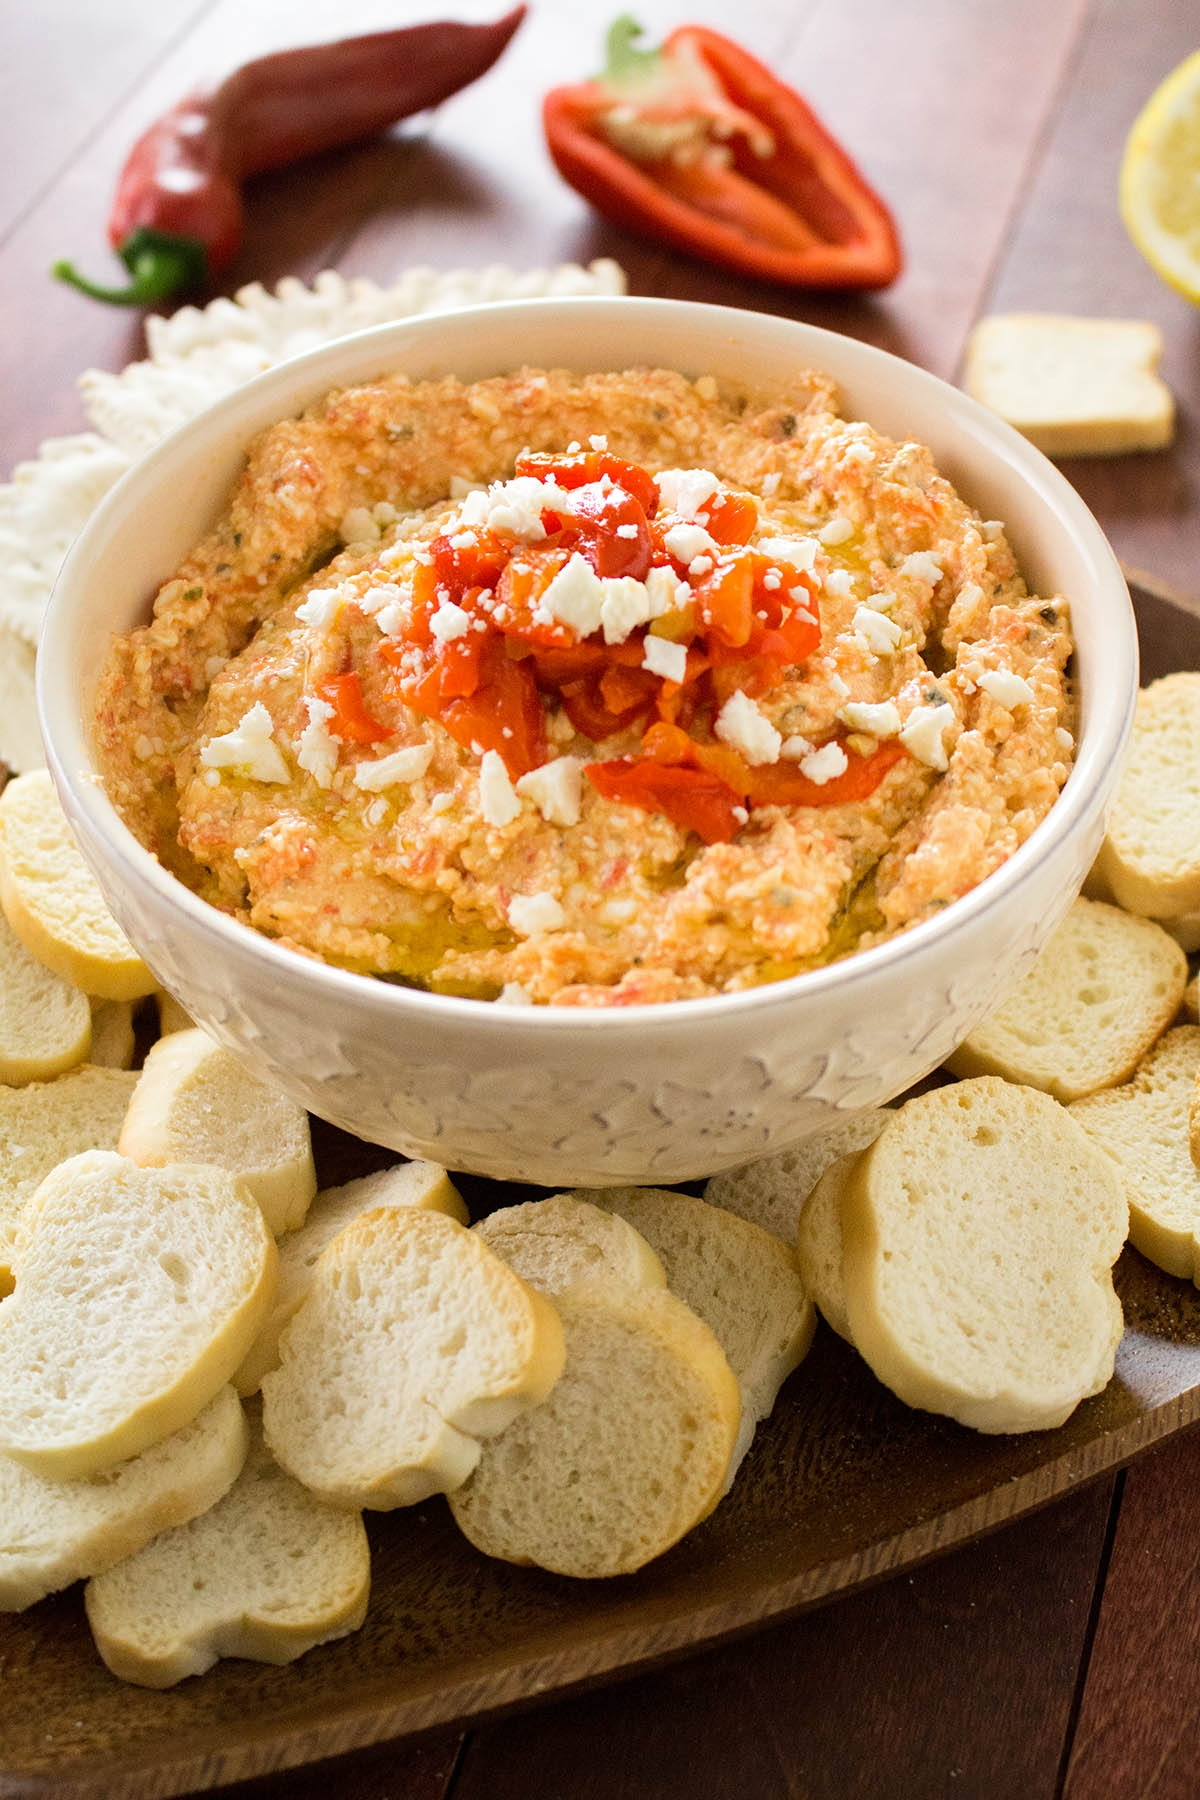 Roasted Red Pepper-Feta Cheese Dip (Htipiti)